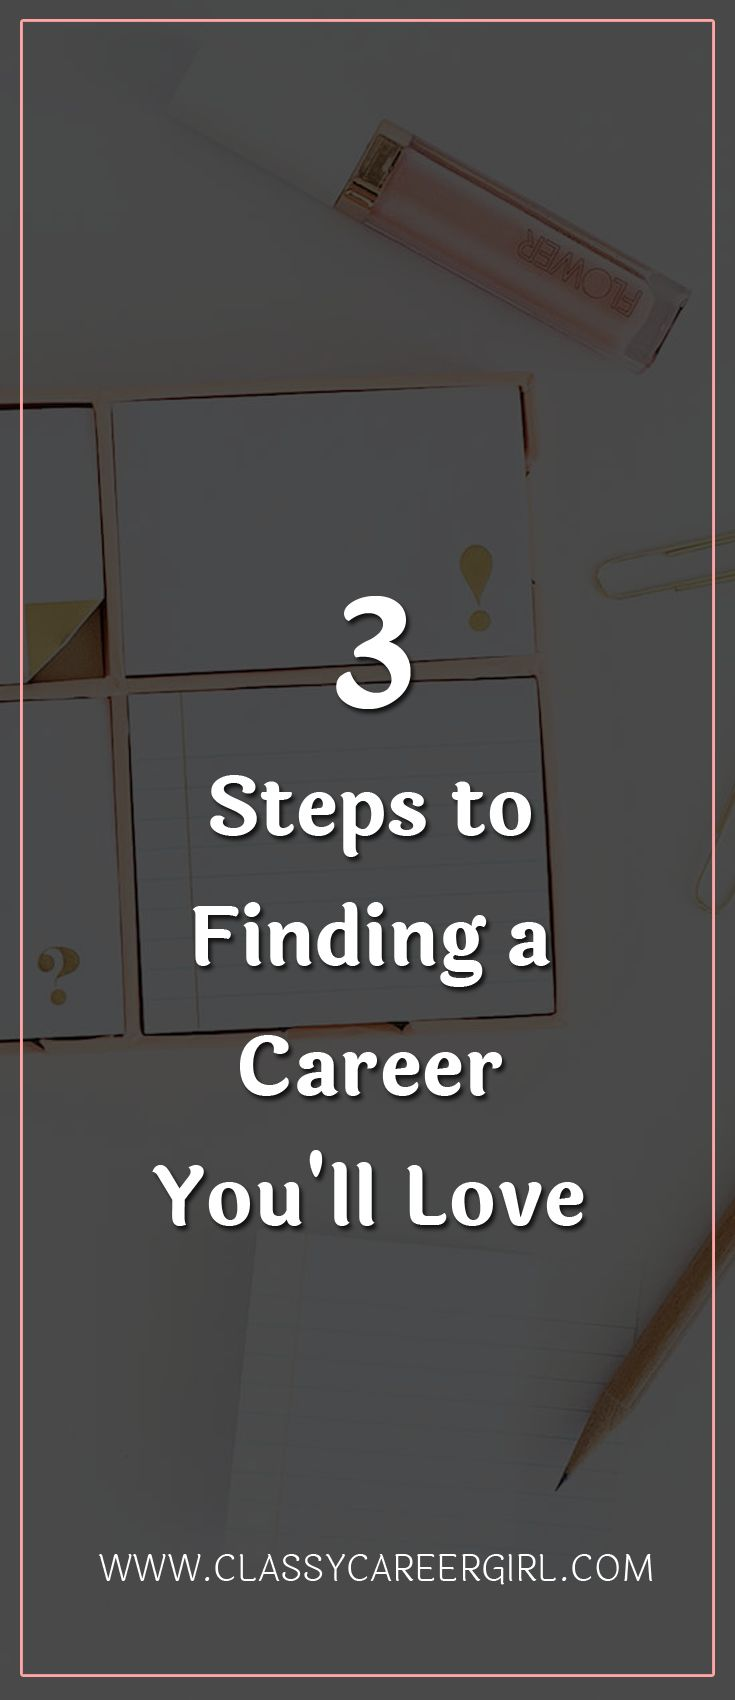 images about networking advice and tips 3 steps to finding a career you ll love when you wake up do you feel like you are living on purpose what would make you feel like you are living for a